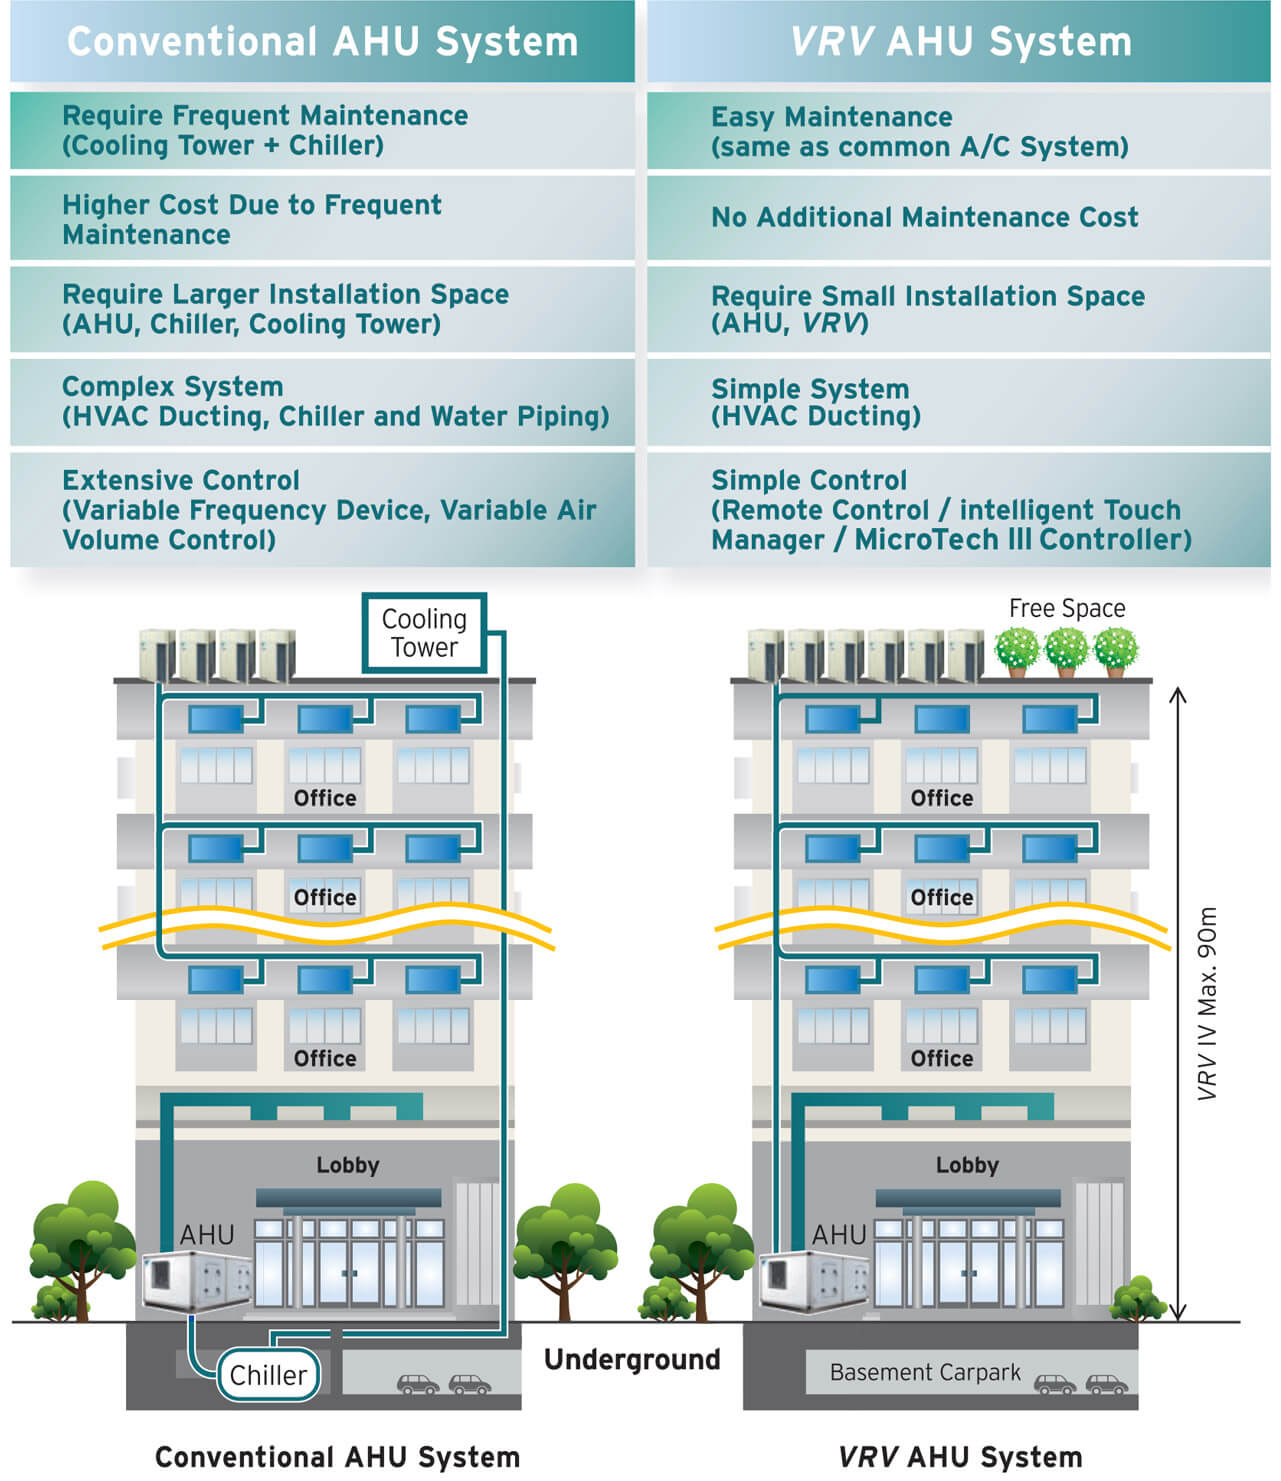 hight resolution of comparison table and diagram for conventional ahu system and vrv ahu system